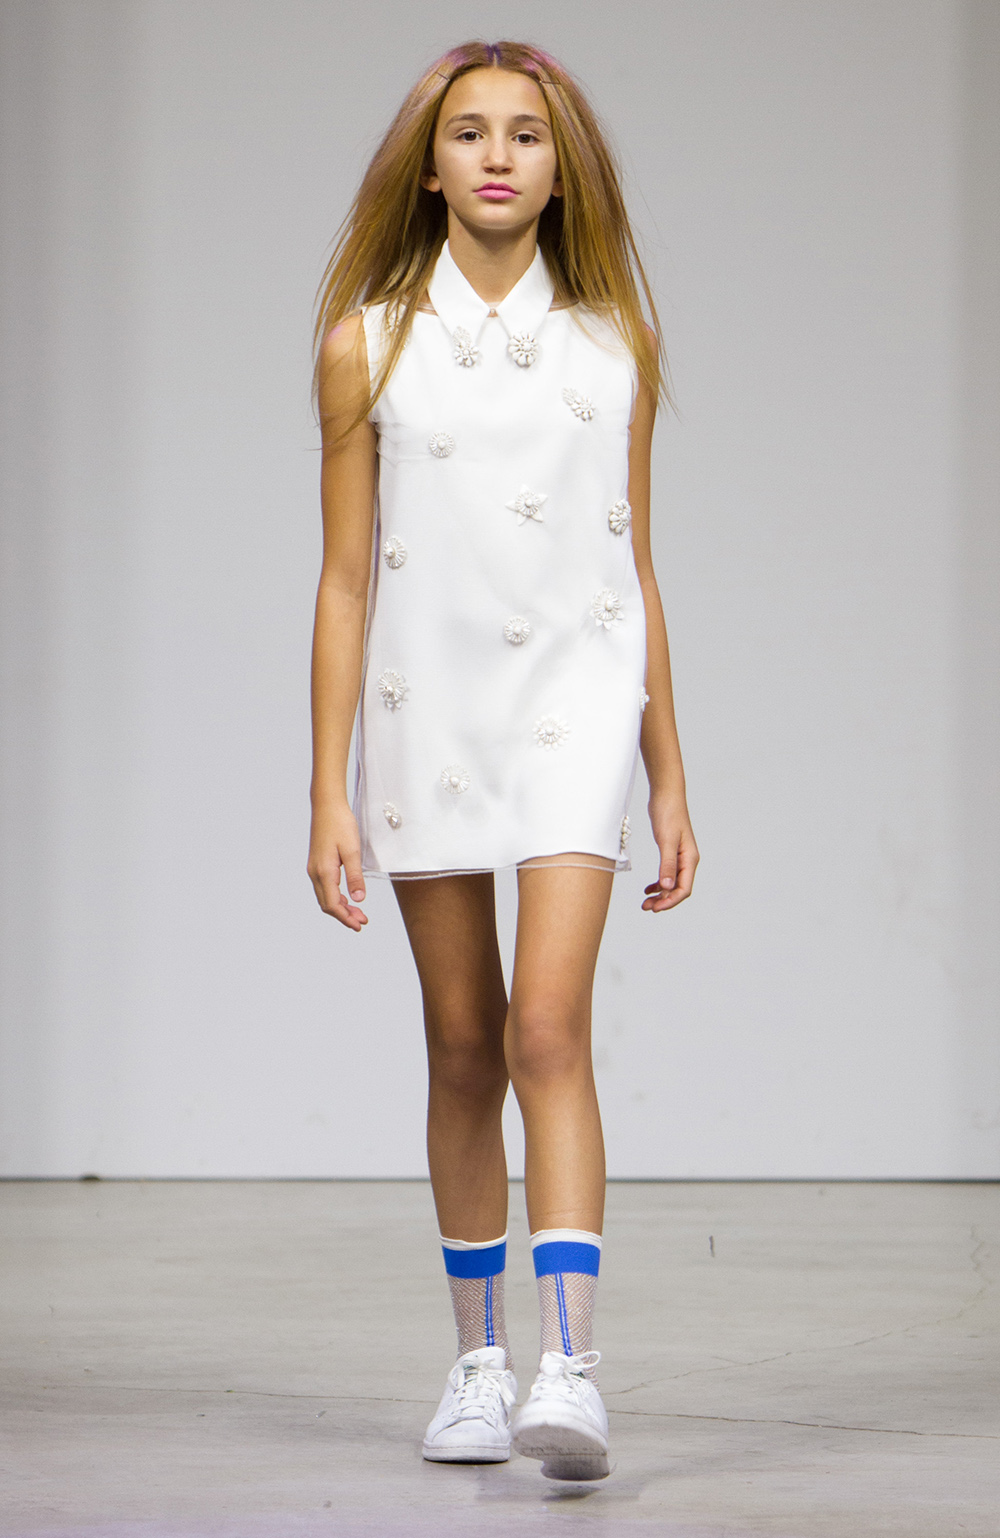 BONNIE YOUNG SS15